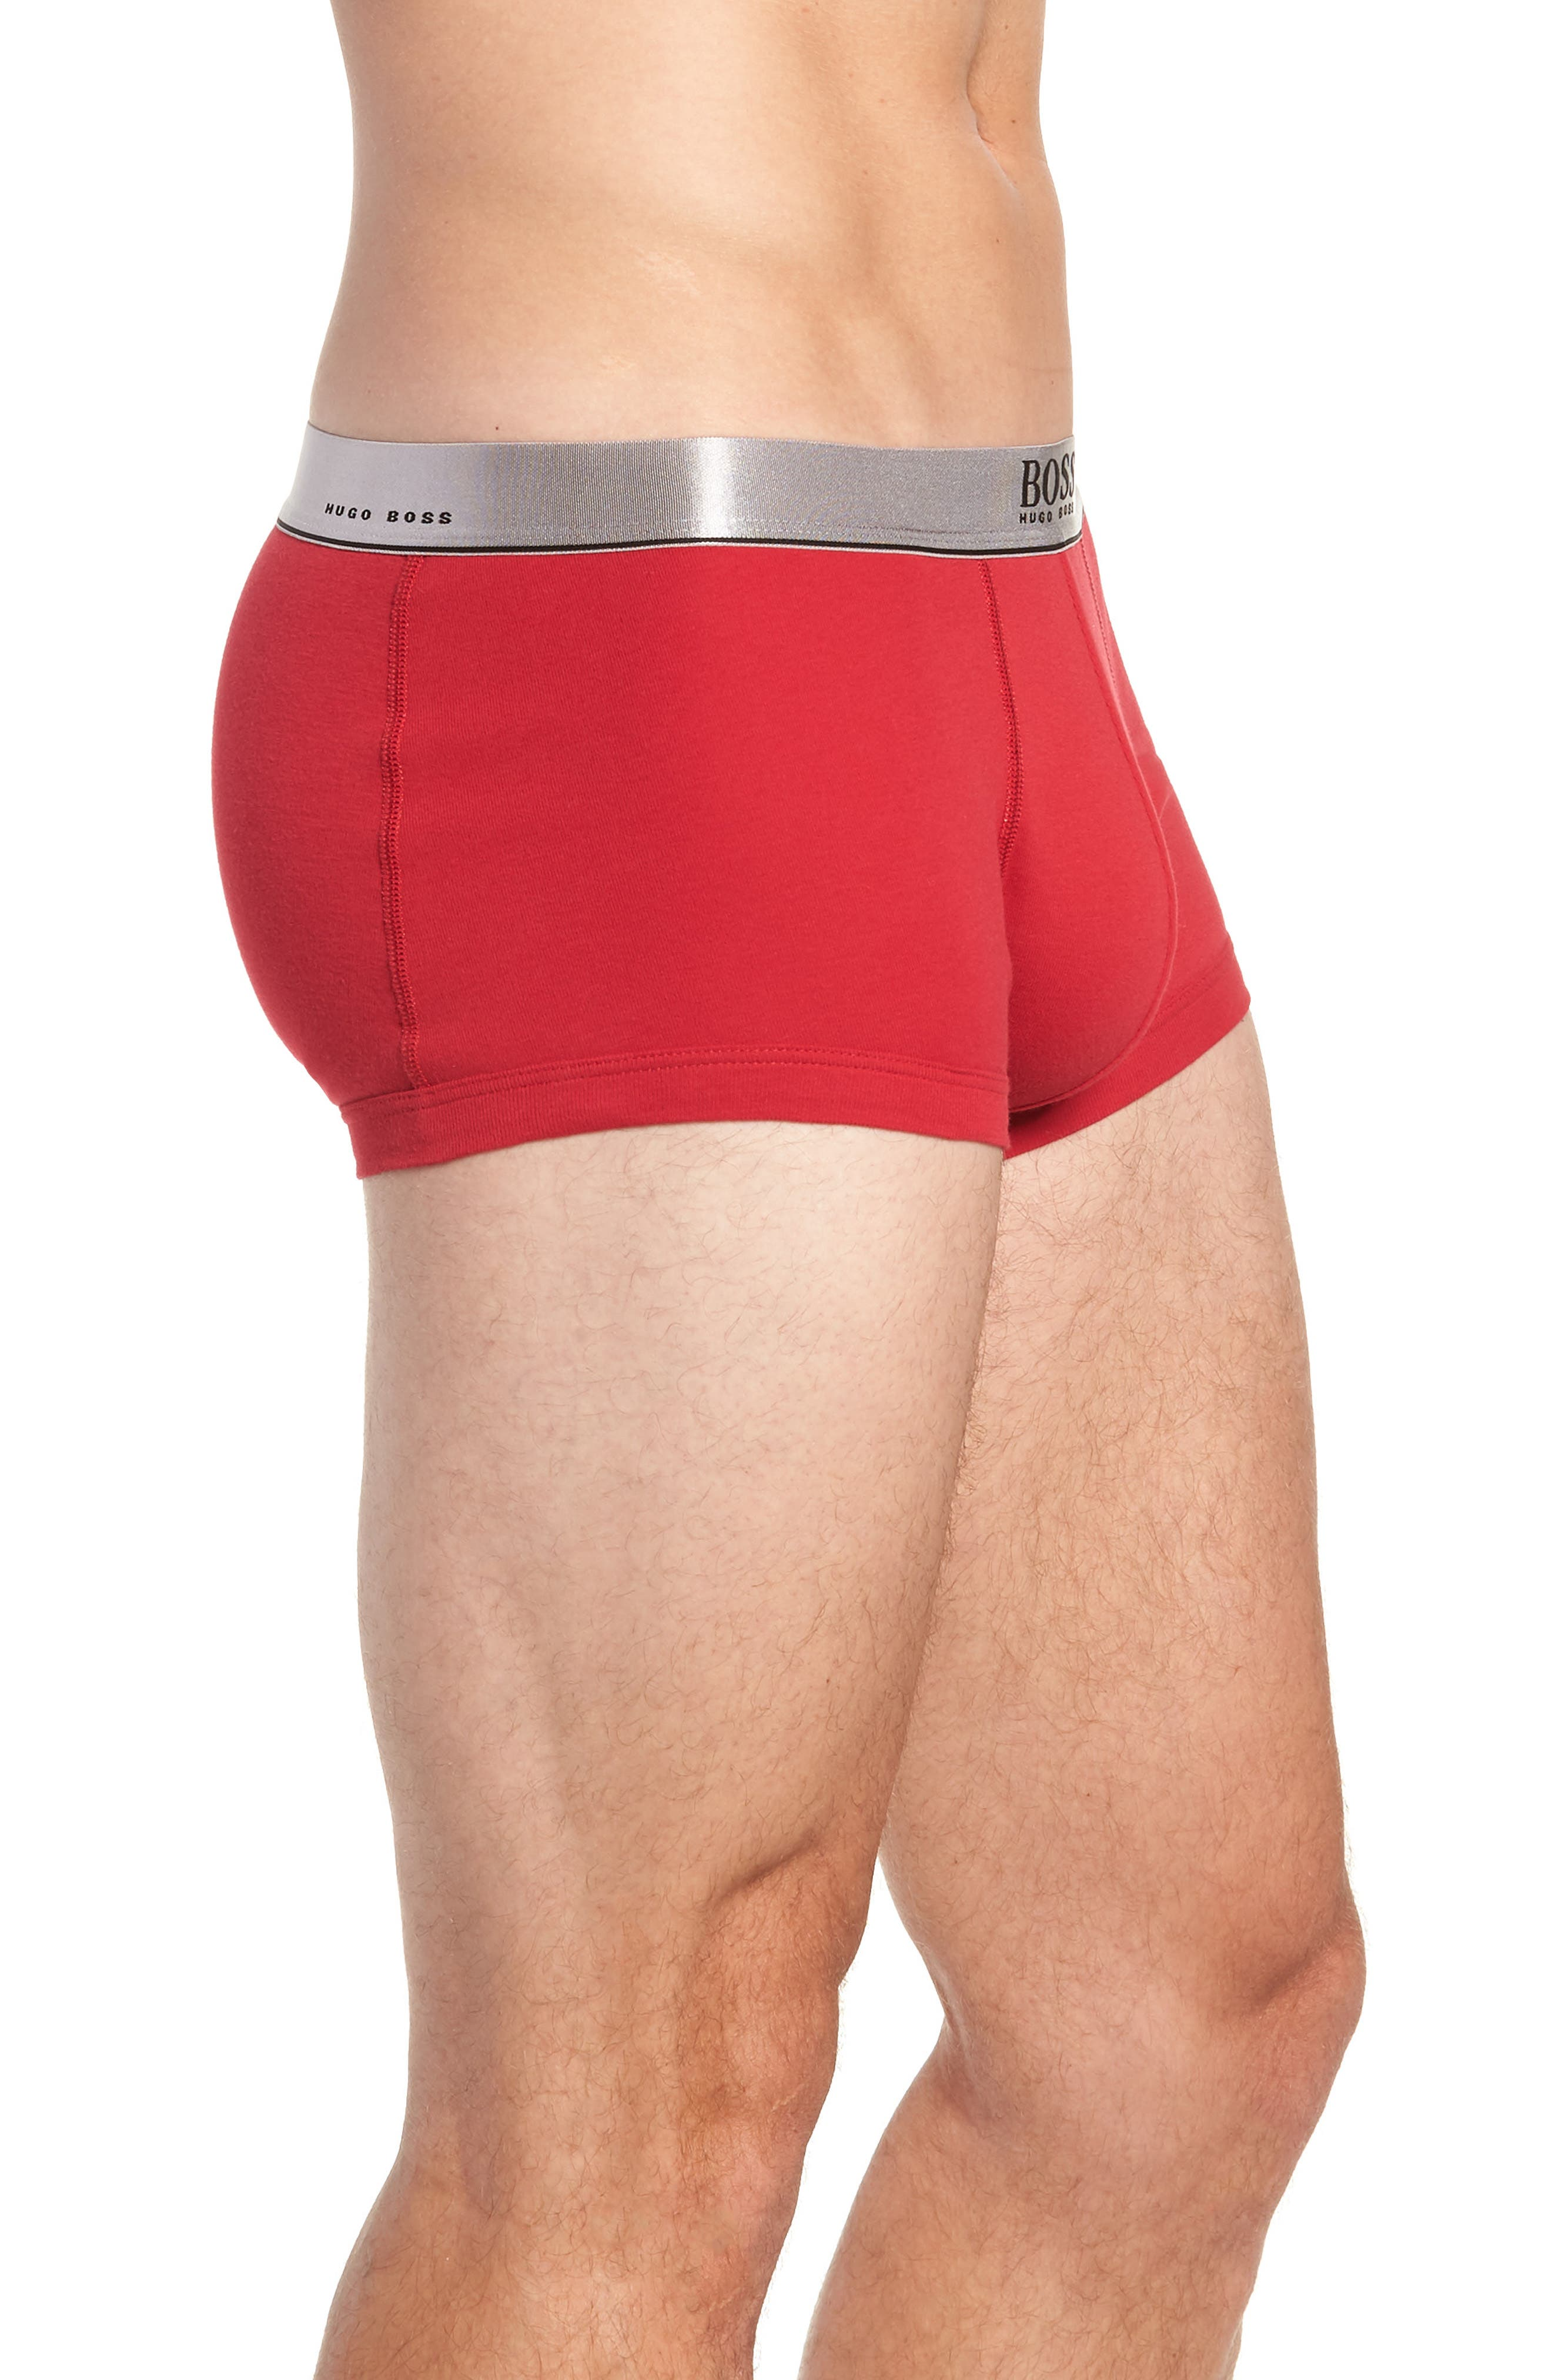 2-Pack Cotton Trunks,                             Alternate thumbnail 4, color,                             RED